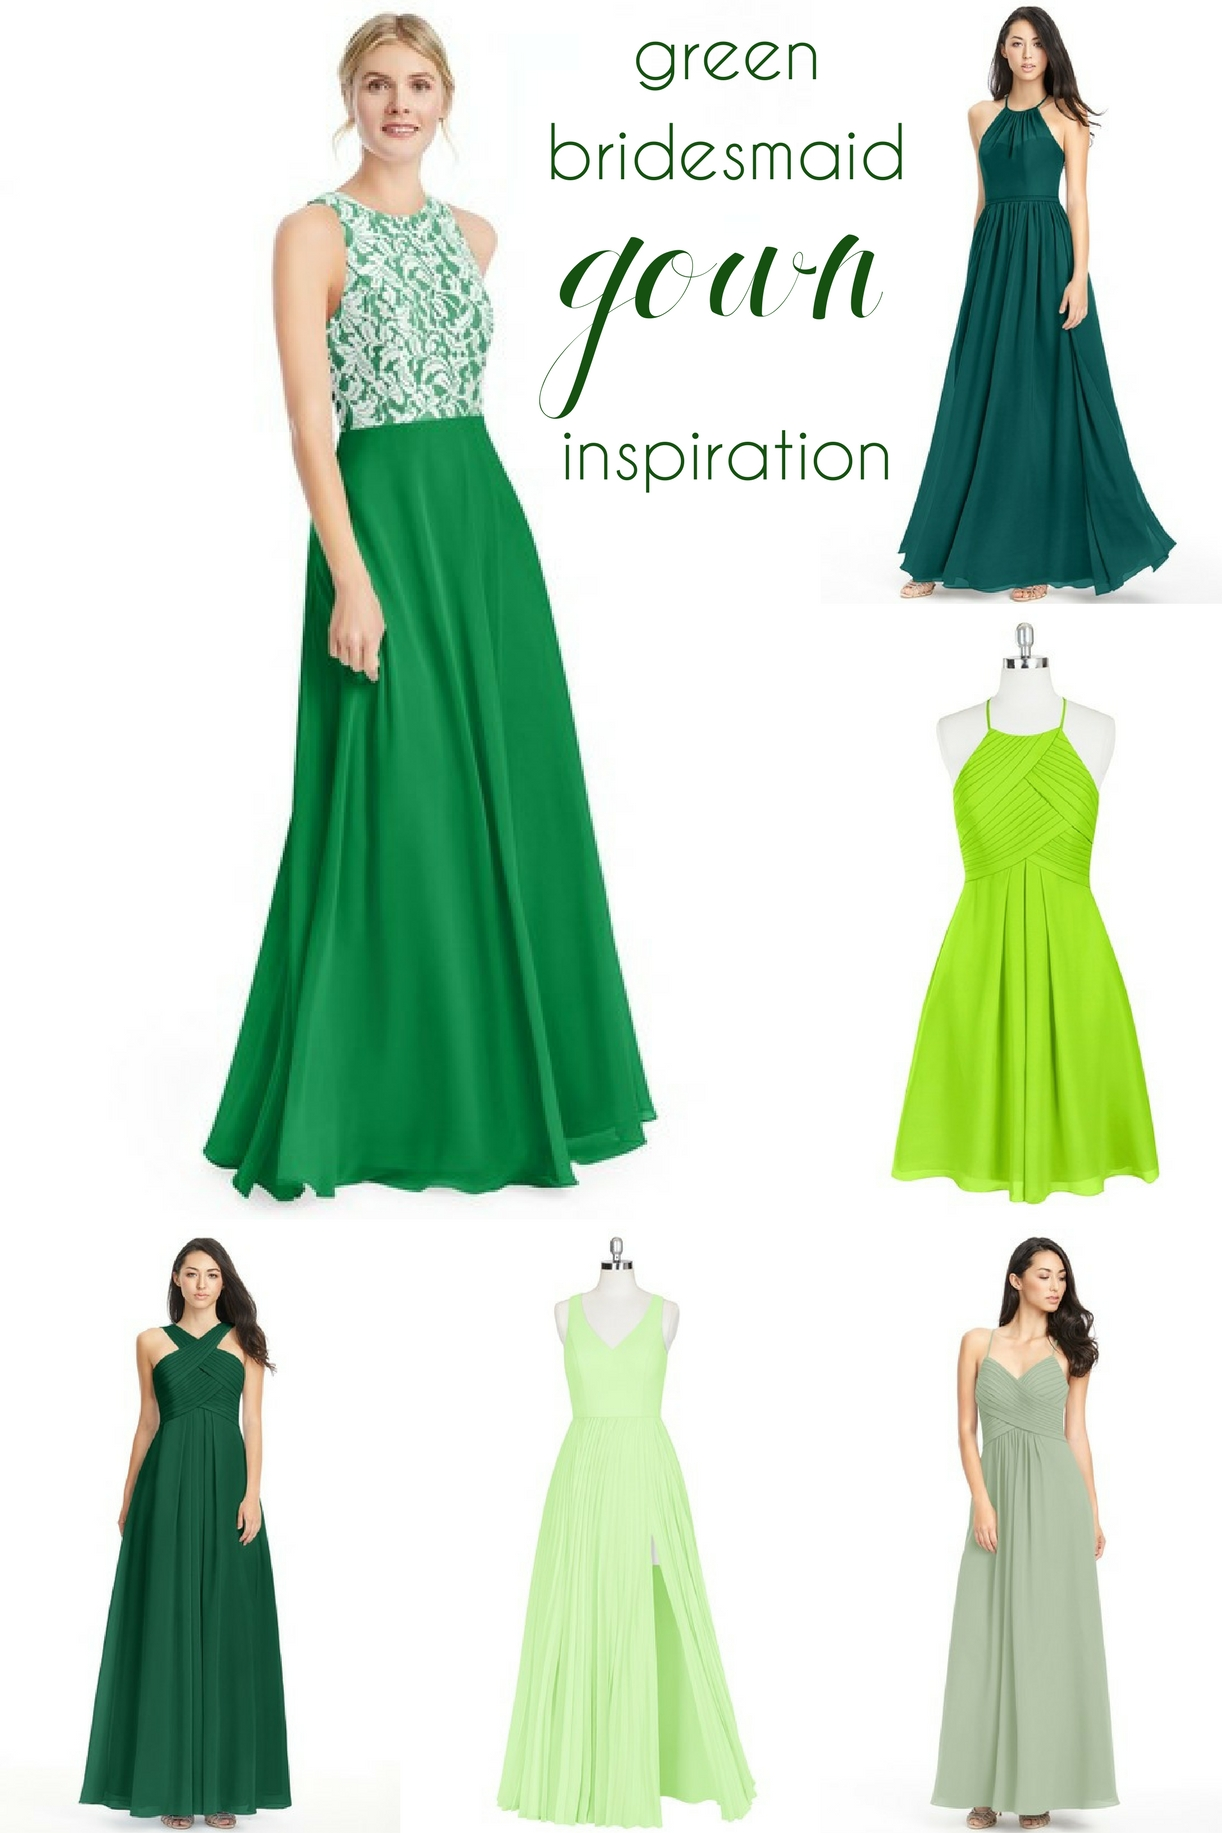 Green bridesmaid dress inspiration hill city bride virginia green bridesmaid dress inspiration hill city bride virginia wedding blog ombrellifo Gallery